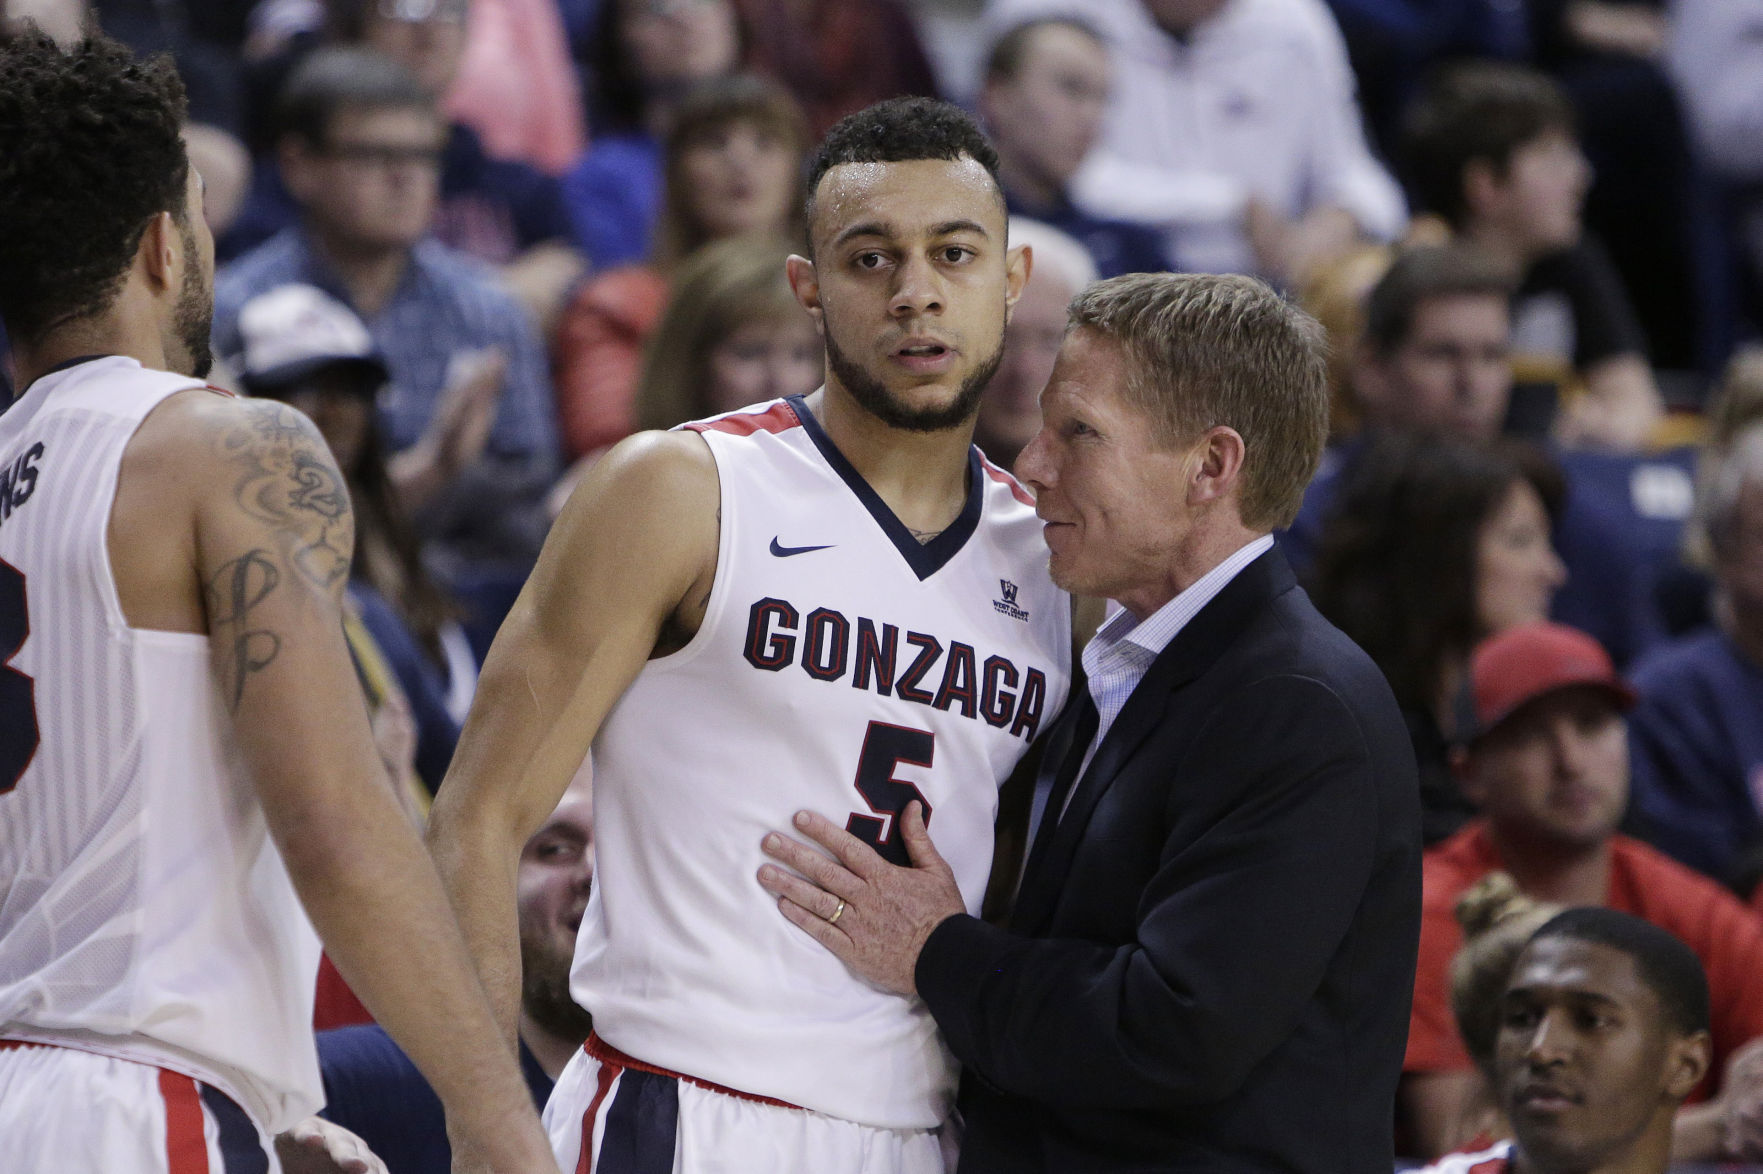 After two decades of winning, Gonzaga still searching for respect ...